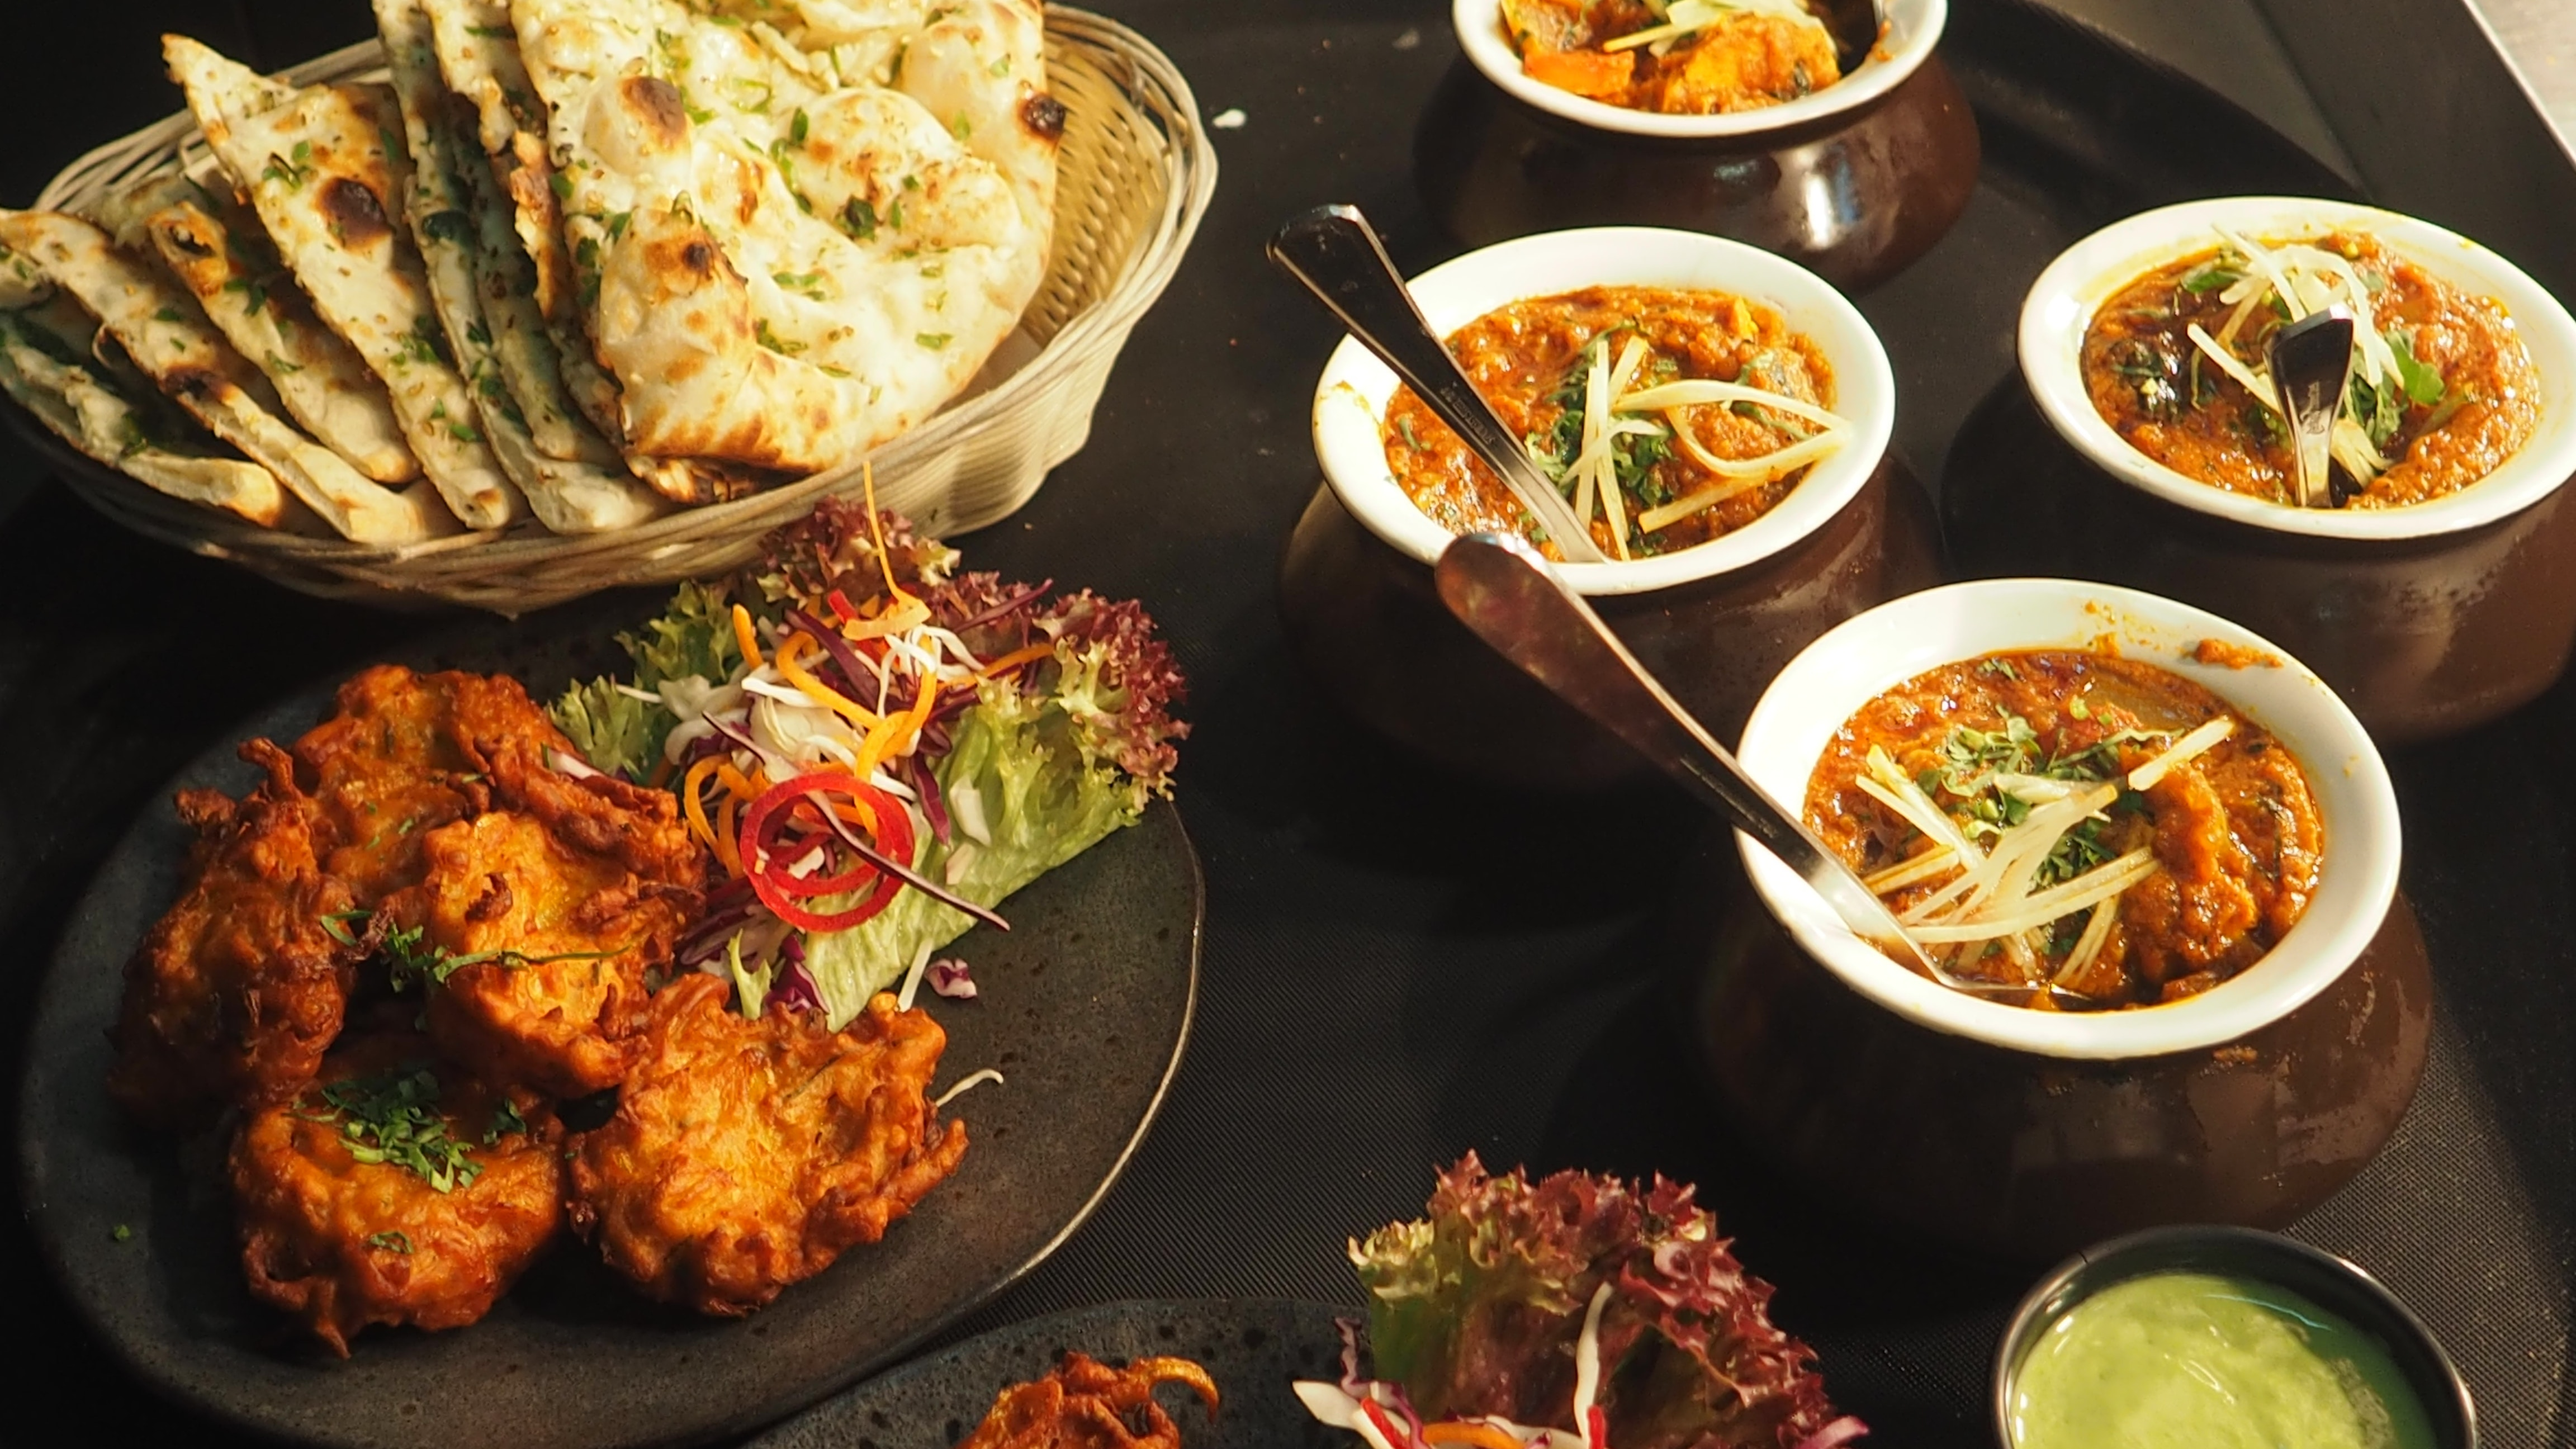 The Dish on Healthy Indian Food